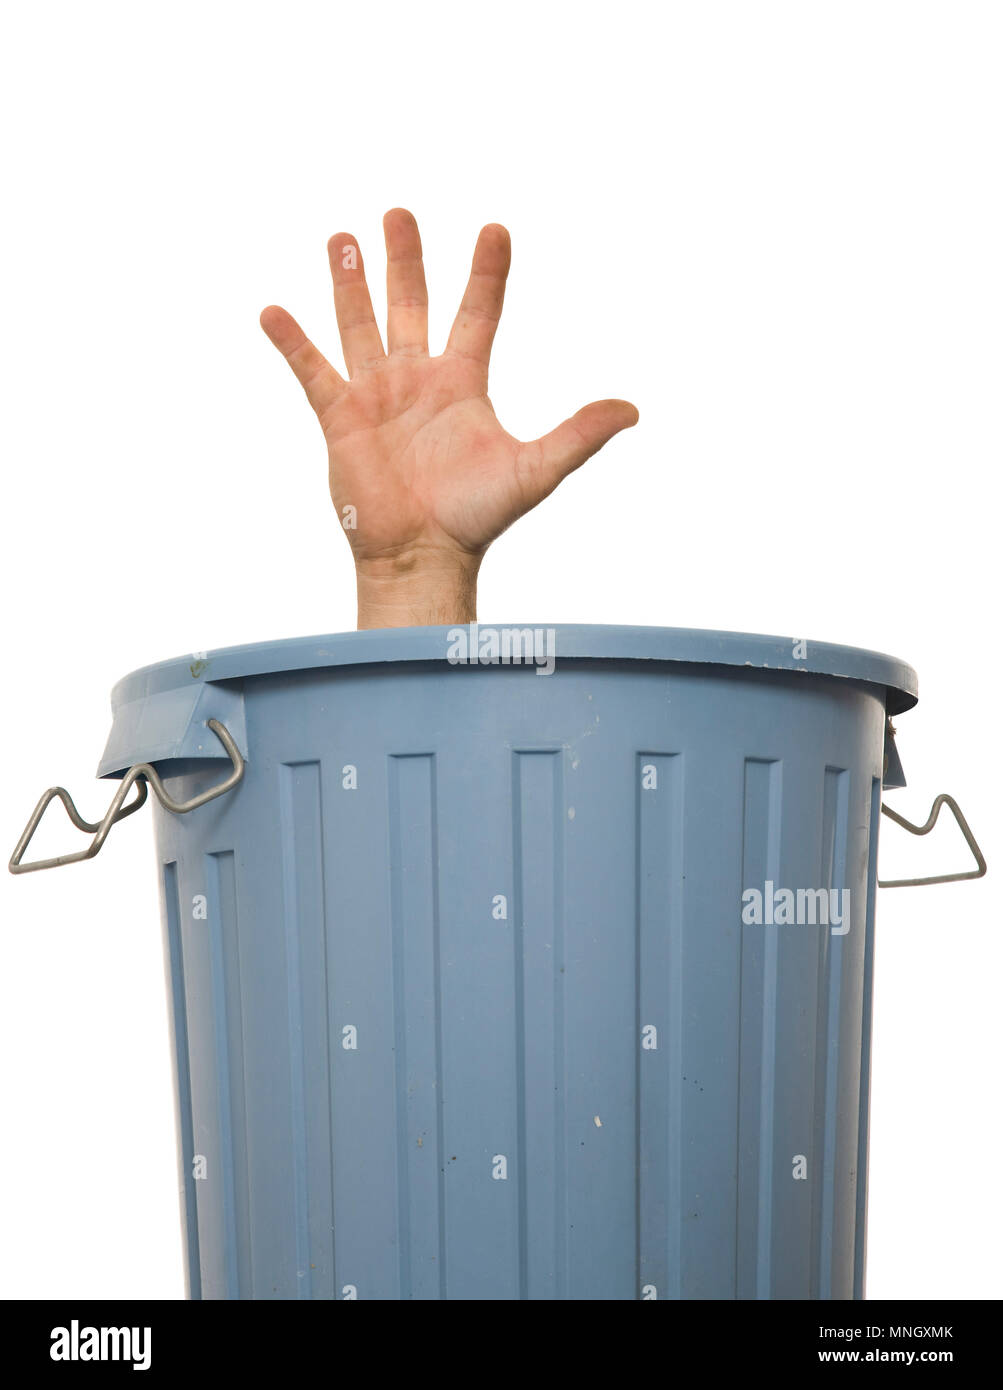 A hand raised from trash can, a concept of social issues and needing help. - Stock Image